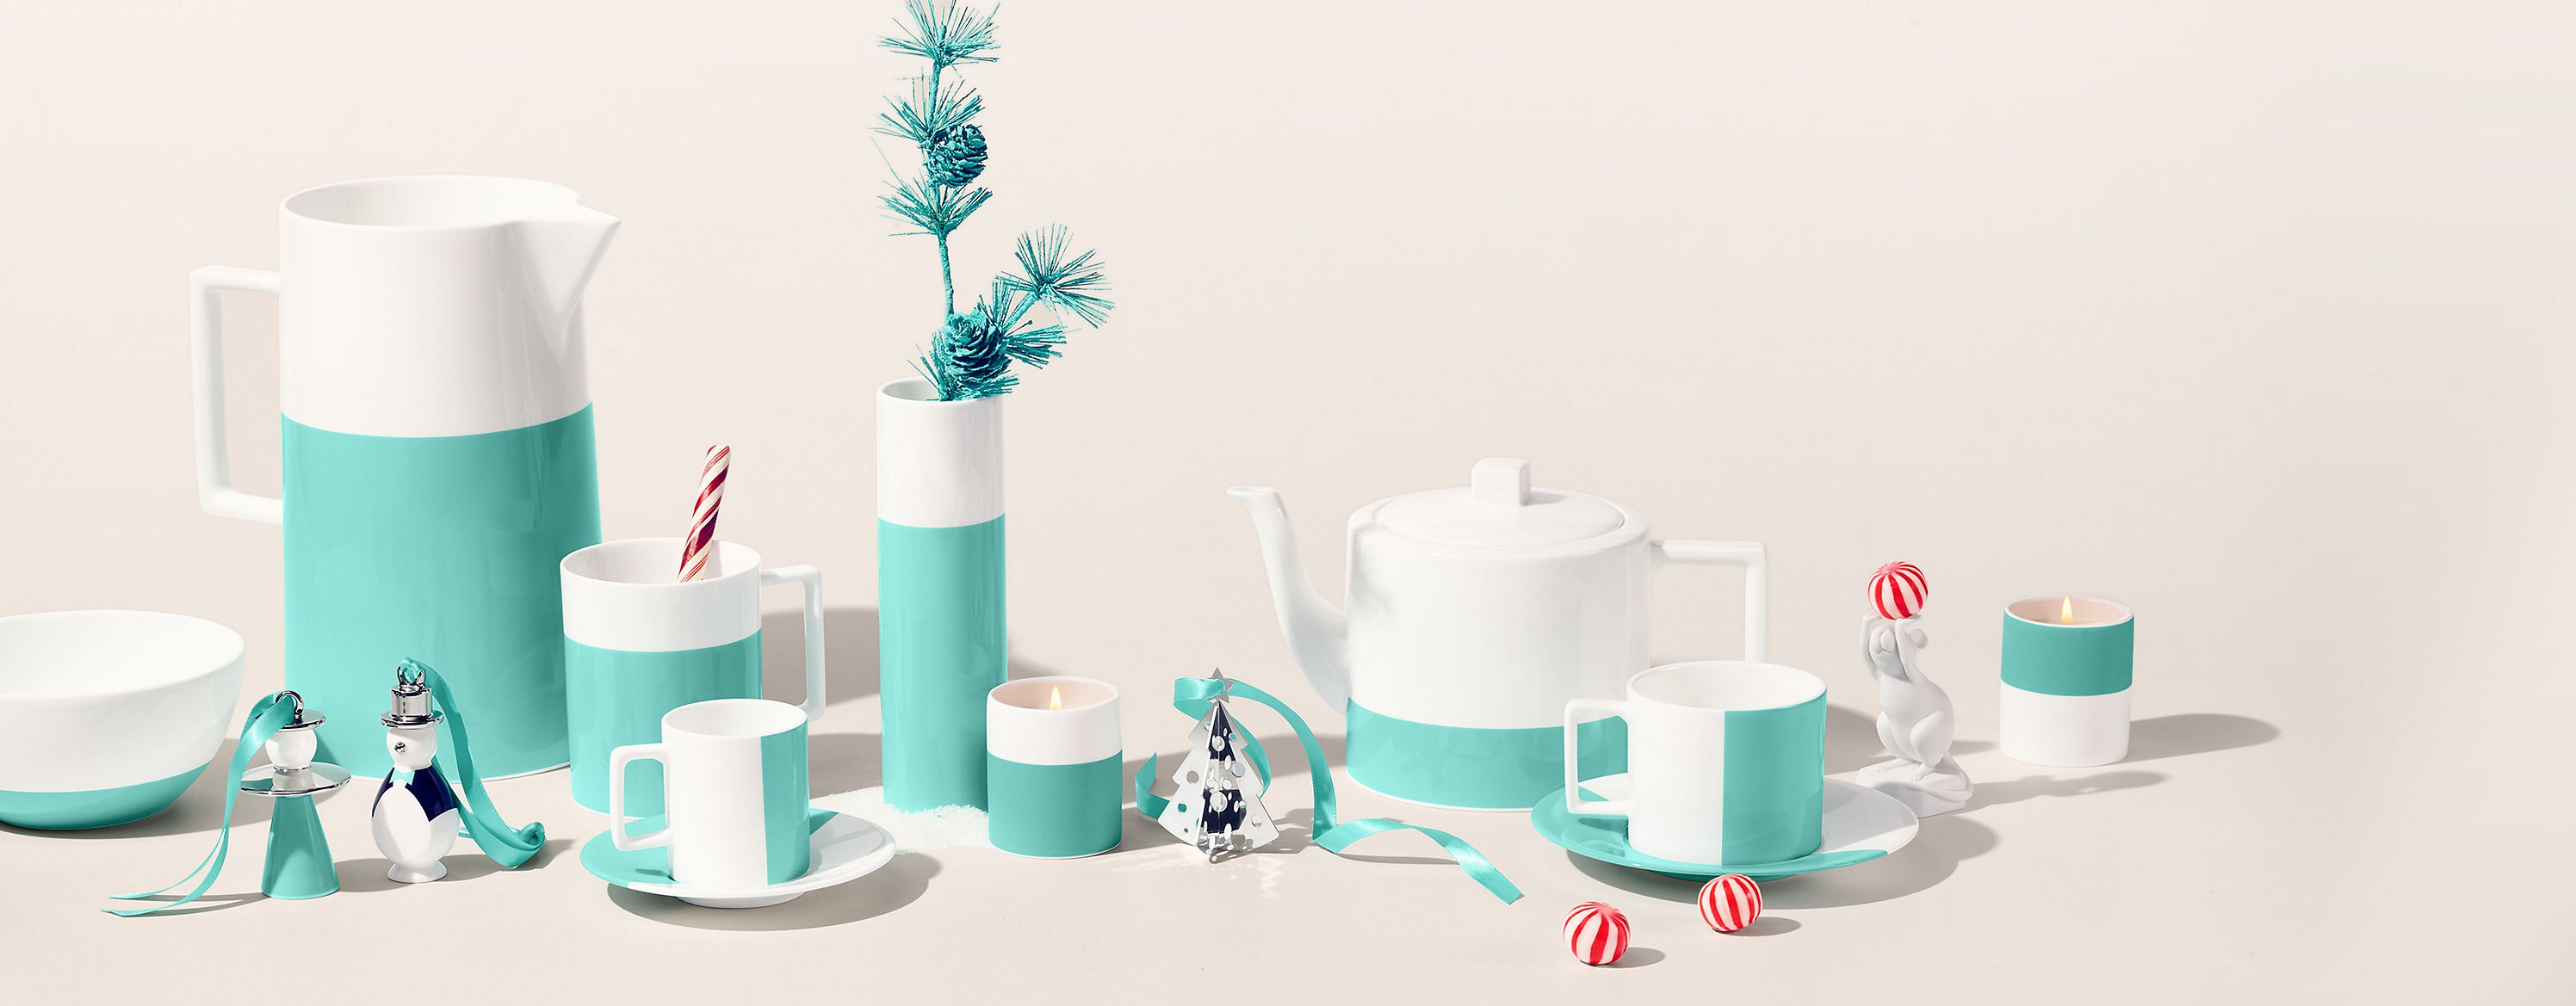 Shop Tiffany & Co. Gifts for the Home